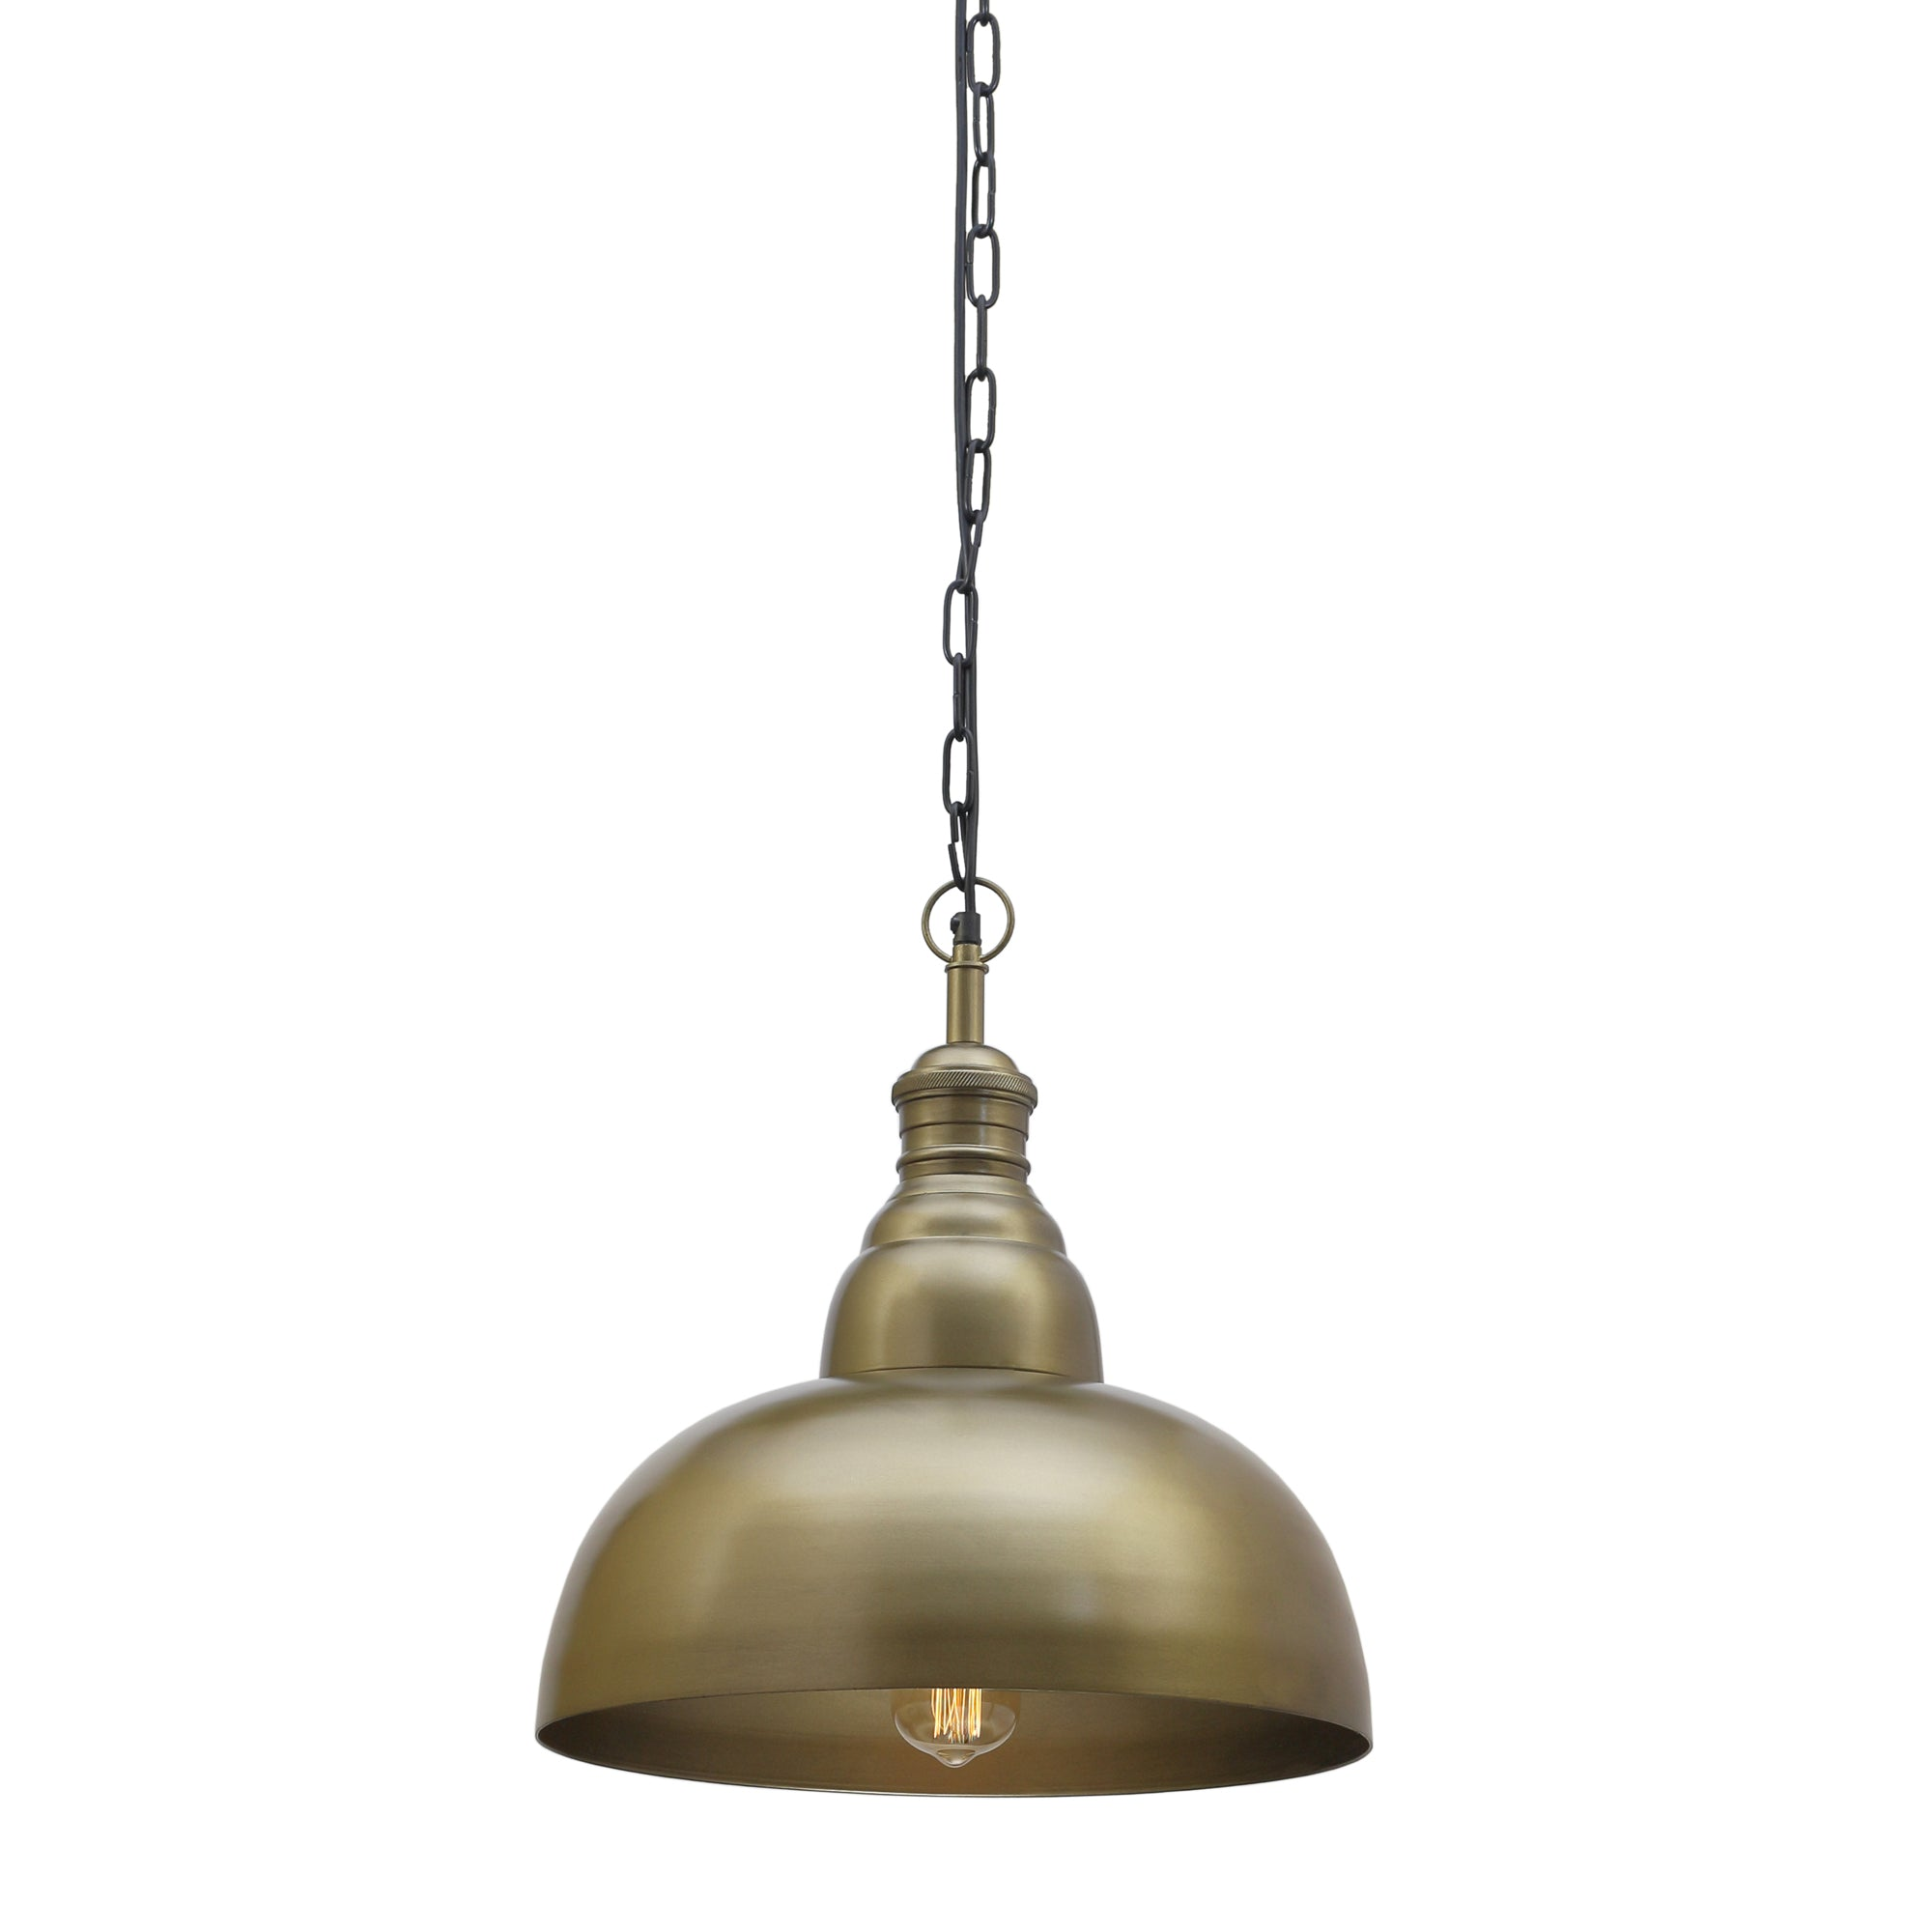 Grande' Handcrafted Antique Brass Pendant Light